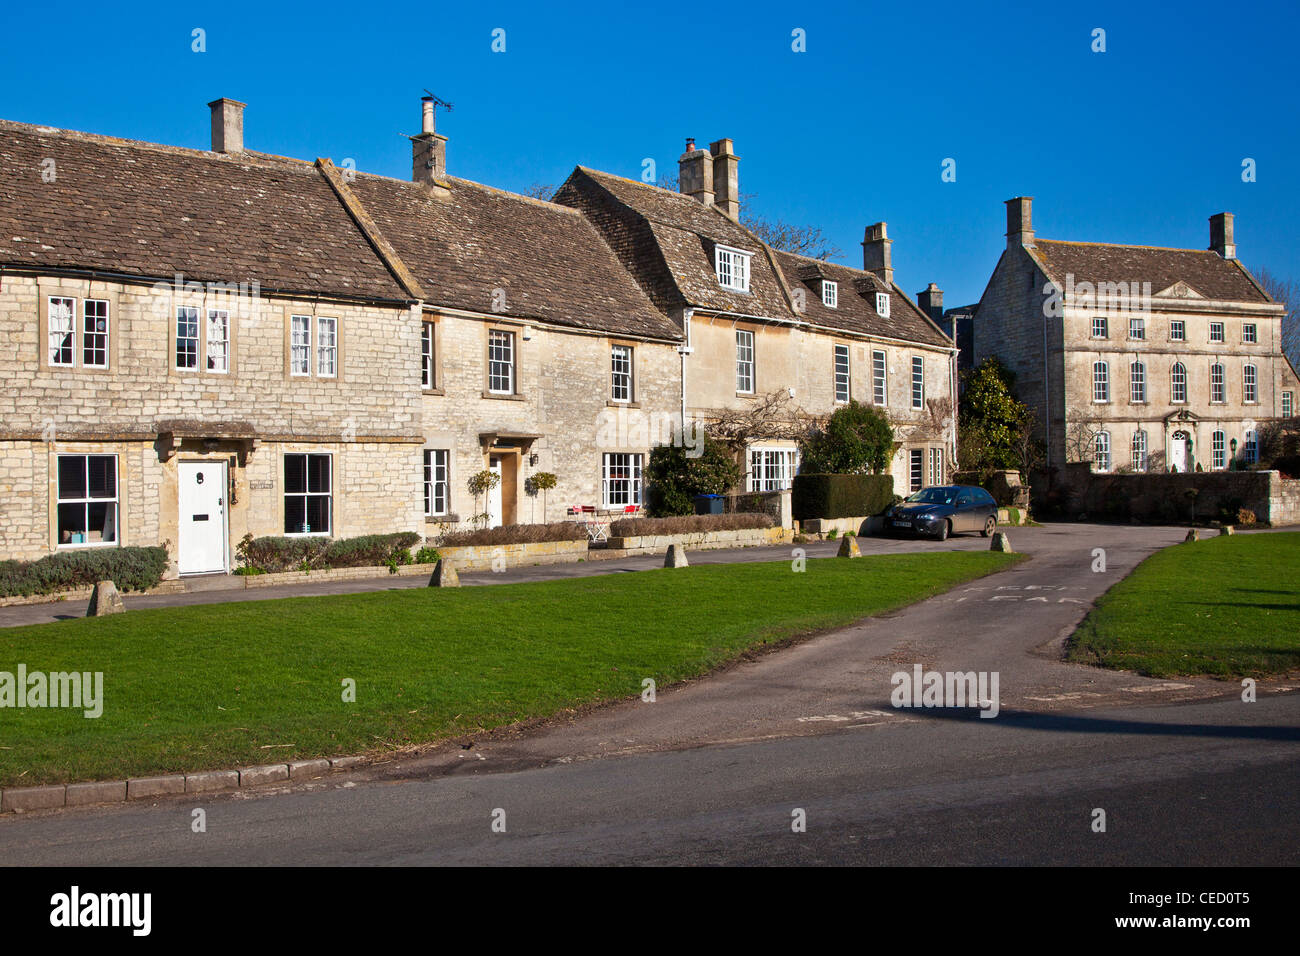 Cotswold stone houses and cottages around the green in the typical English country village of Biddestone, Wiltshire, - Stock Image